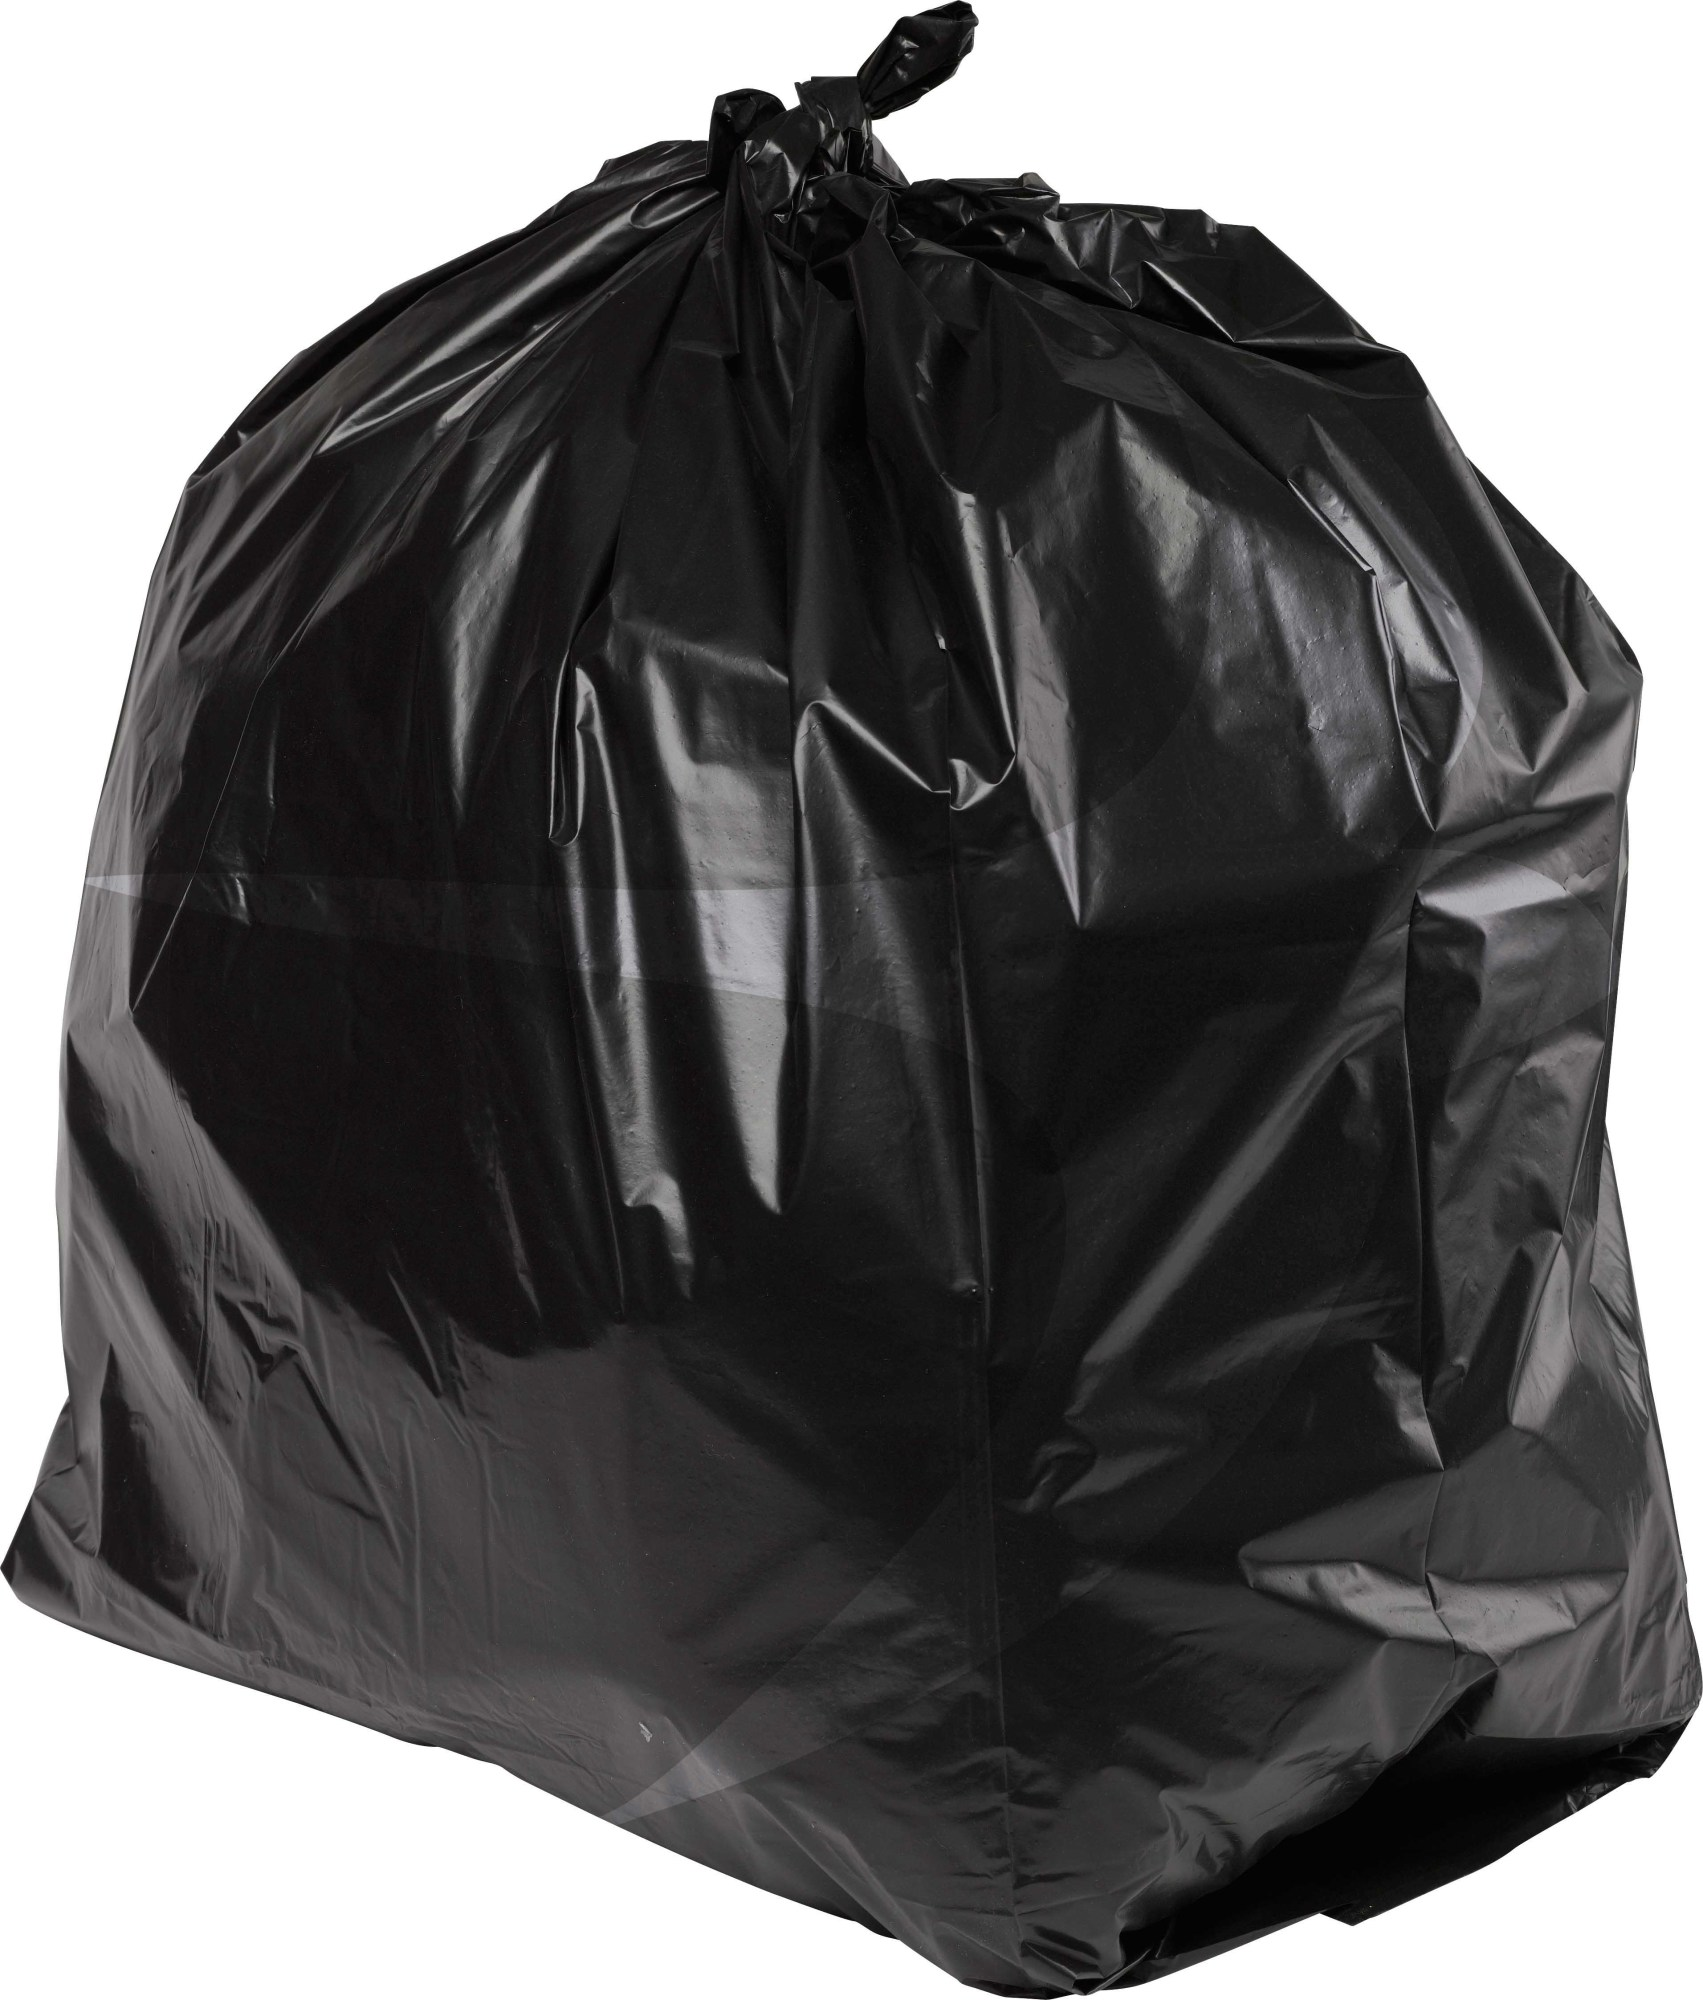 PRO-SAC 450/732 x 990mm Medium Duty Black Refuse Sacks